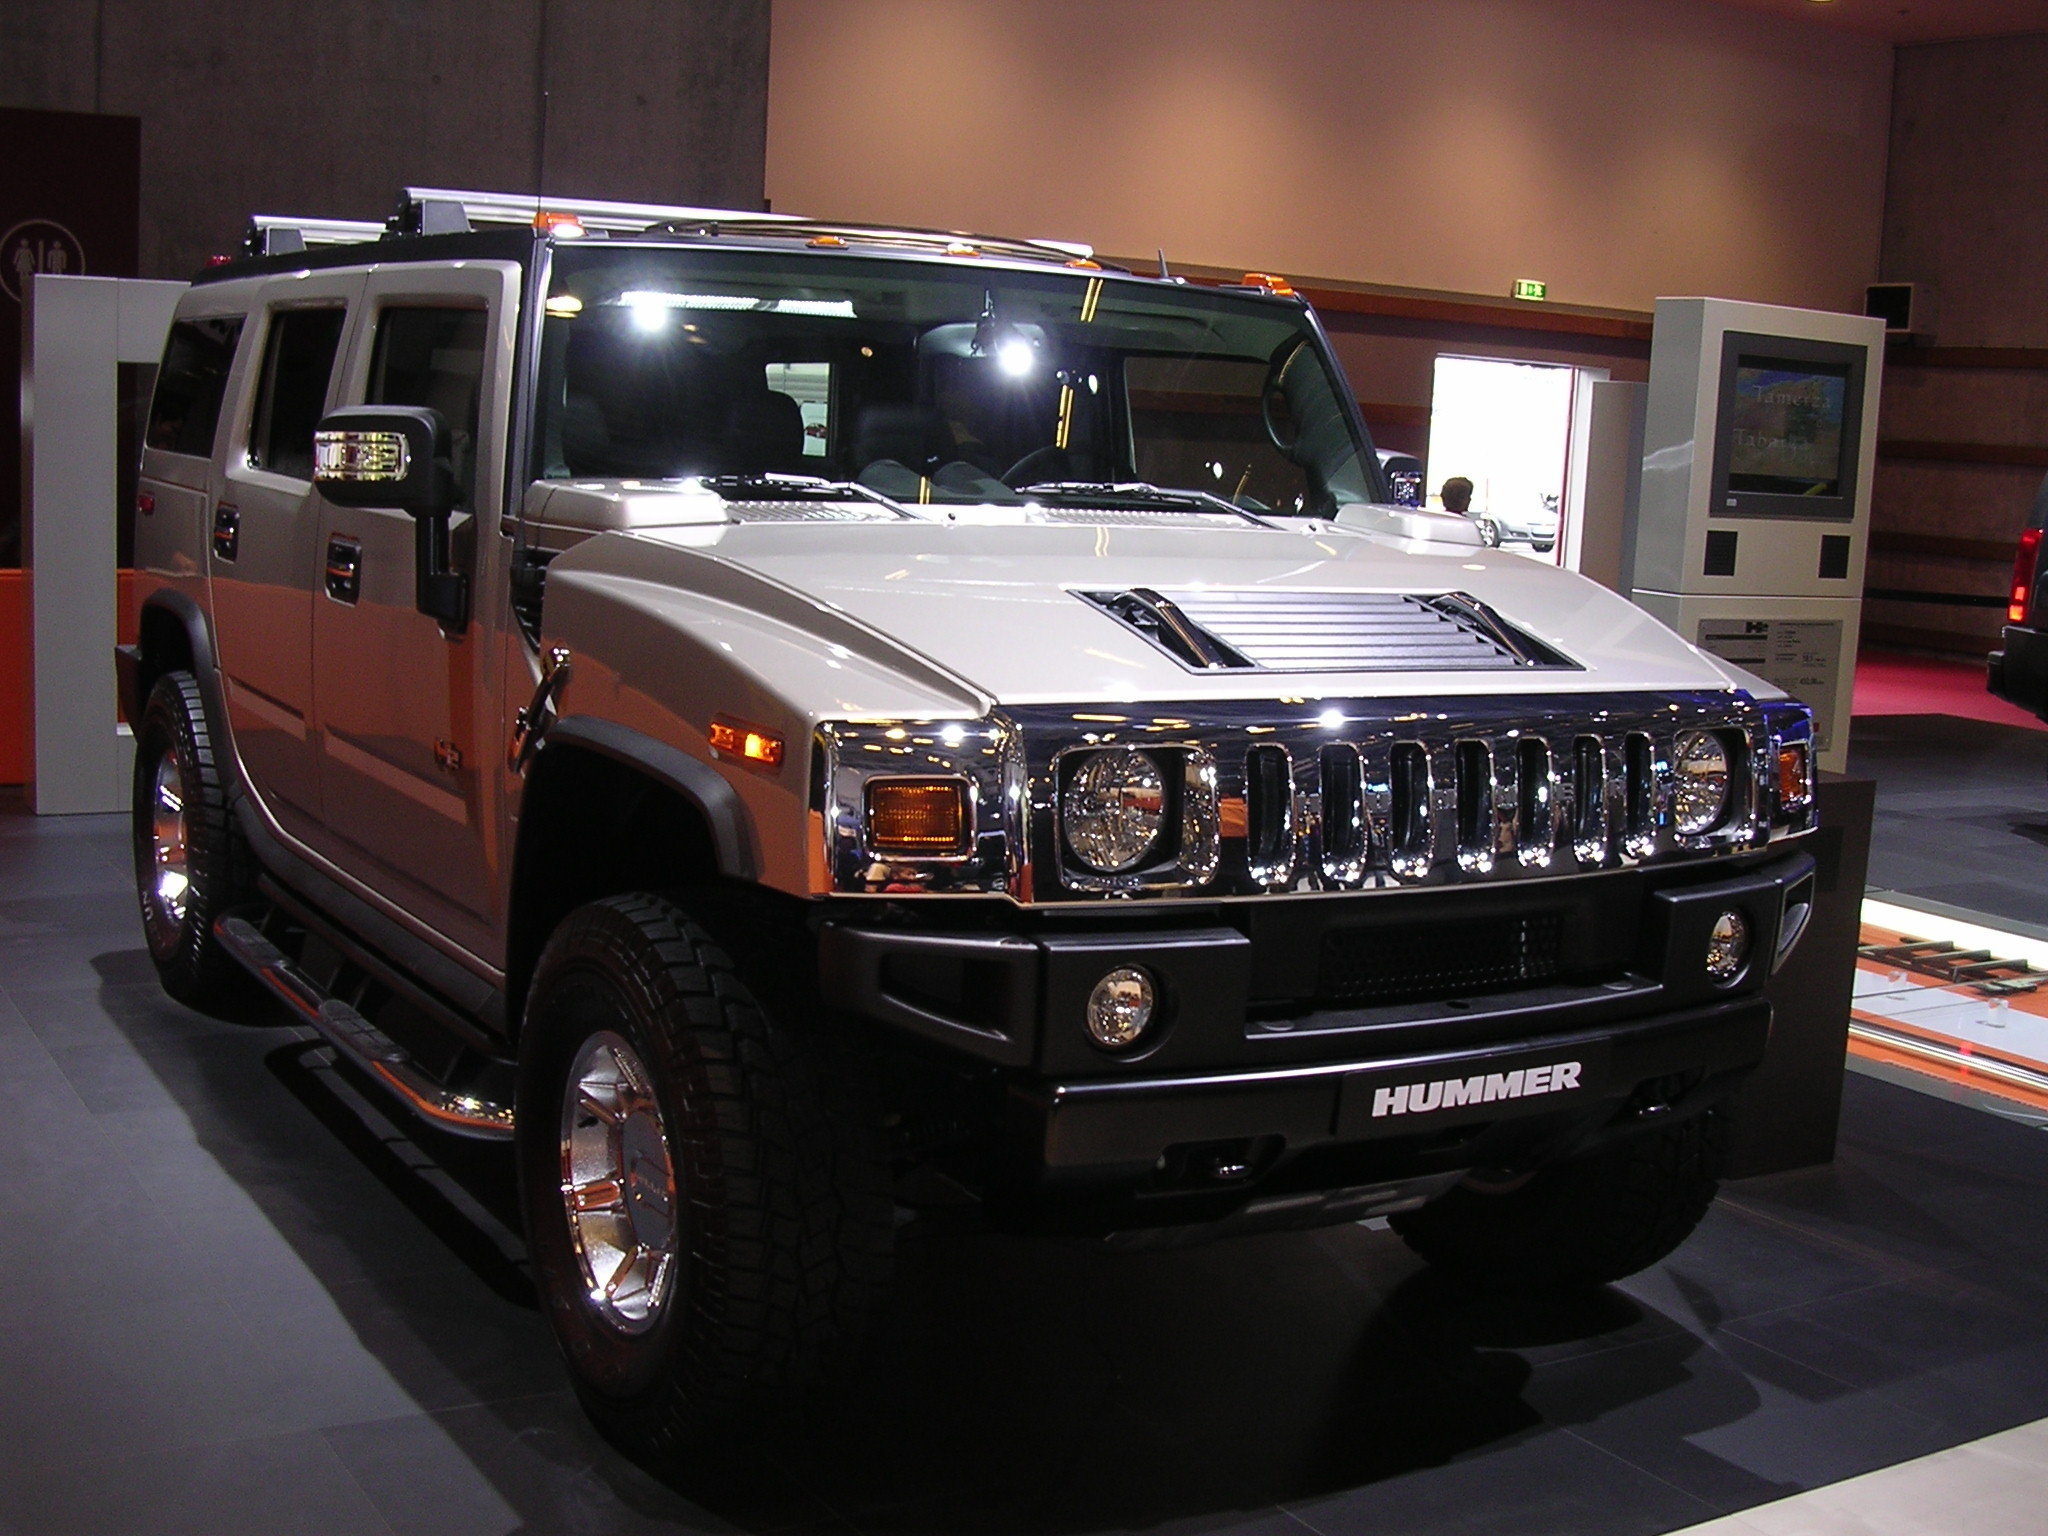 Hummers images Hummer HD wallpaper and background photos ...